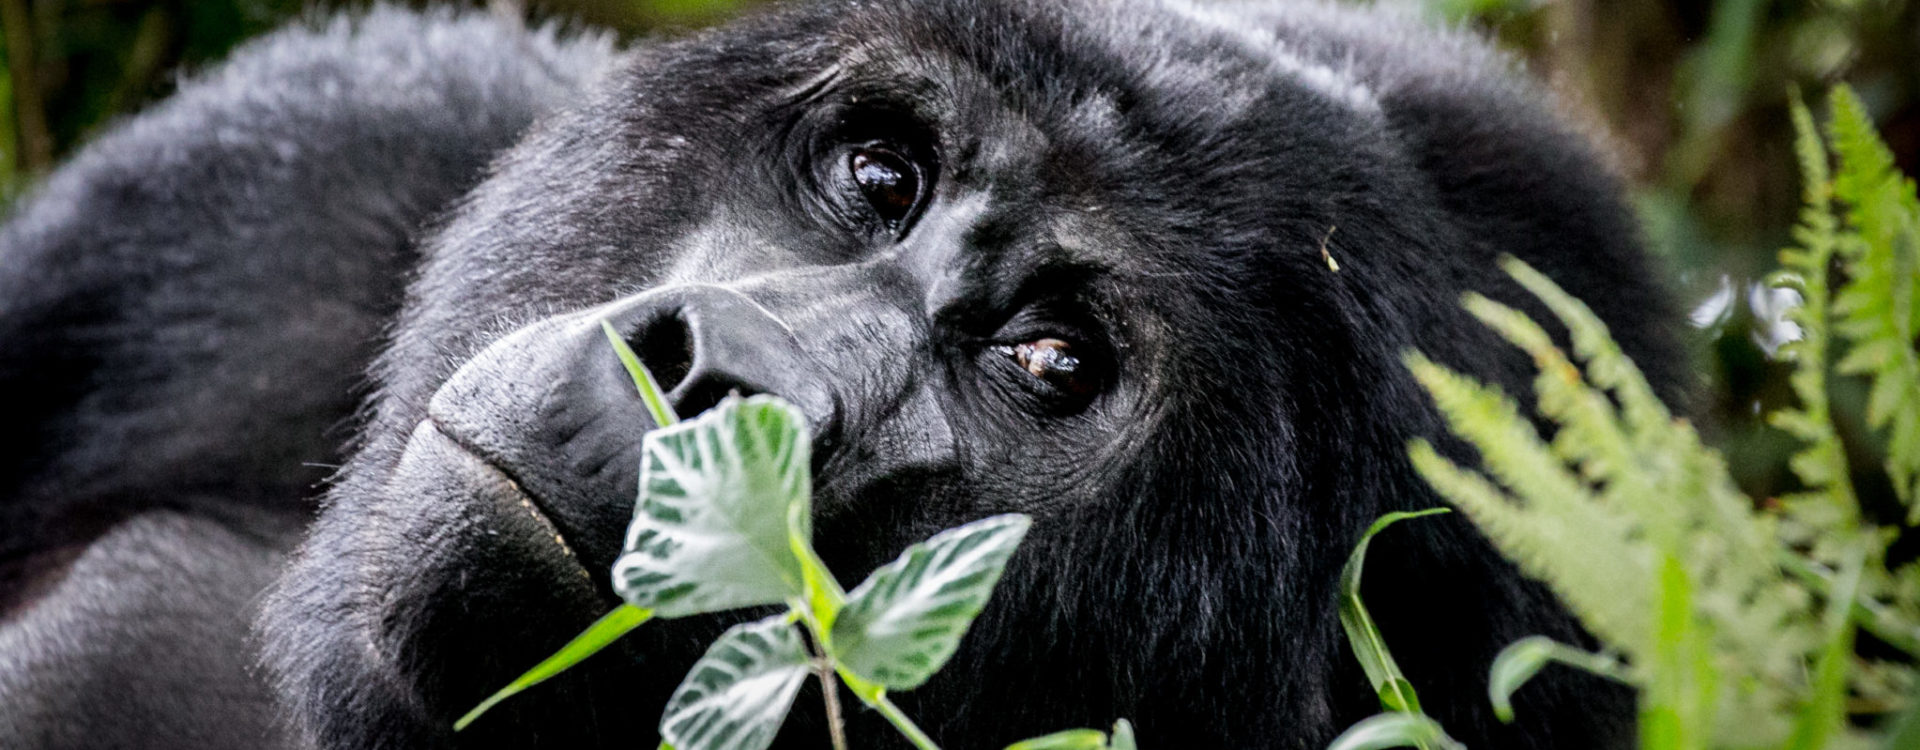 uganda Safari, Gorilla trekking in Uganda, uganda safari holidays , african wildlife safari tours, eco tourism, safari holiday packages from Australia, african wildlife safari tours, eco-tourism, sustainable tourism, conservation, gorilla trekking